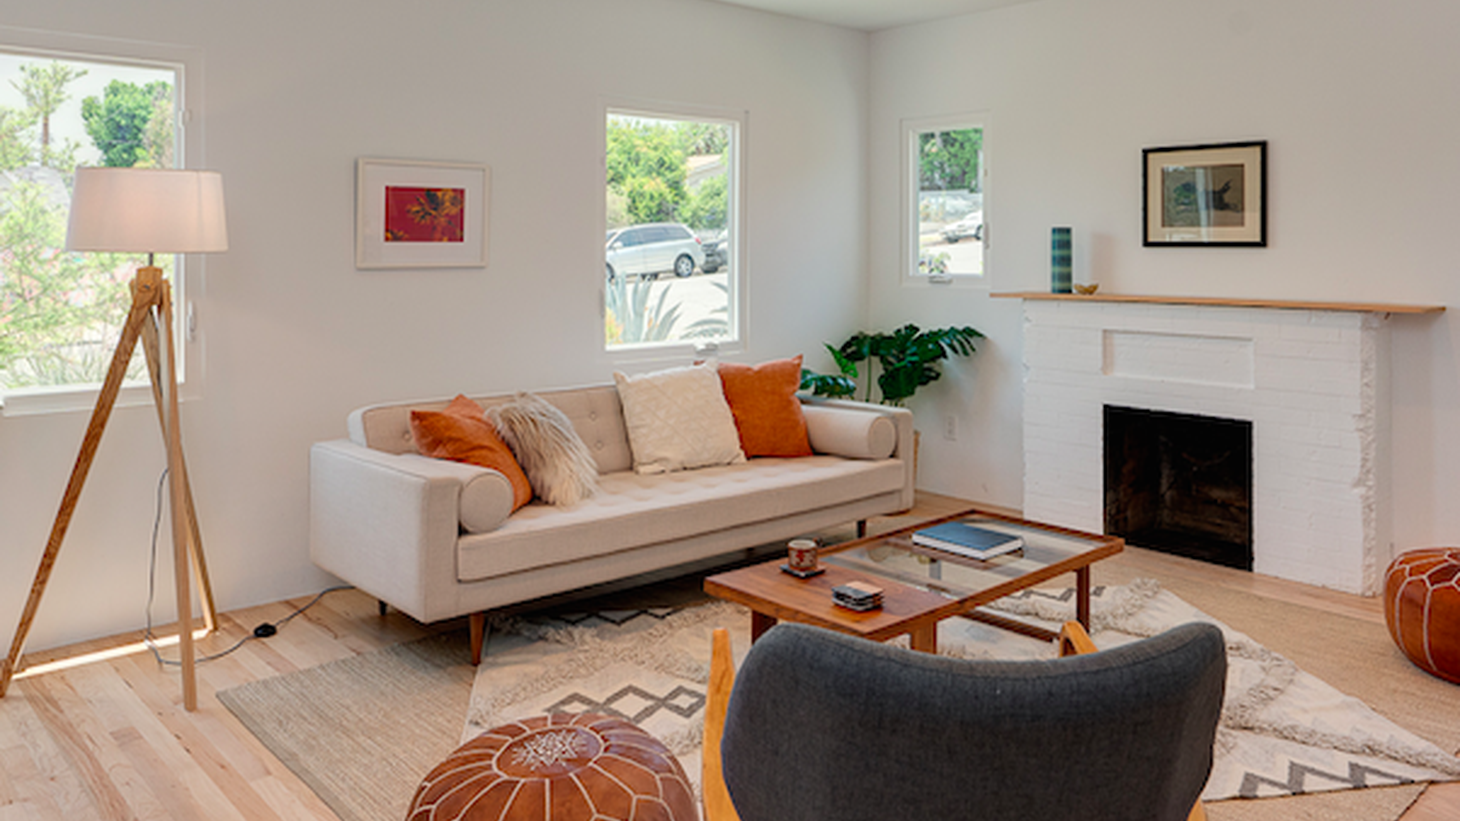 KCRW - How home staging makes housing more expensiveKCRW - July 18, 2019